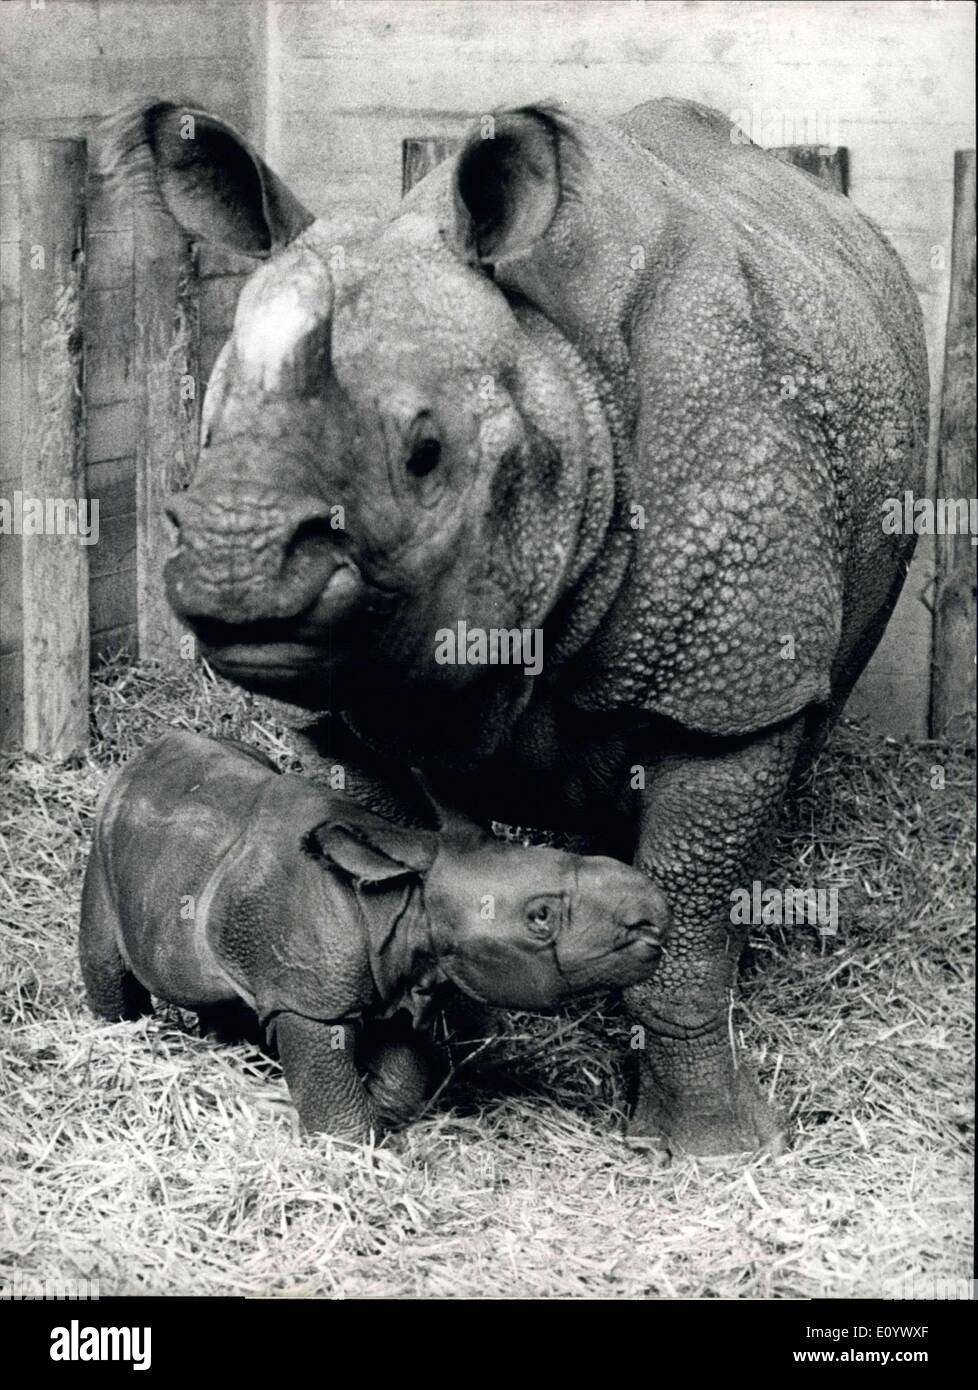 Aug. 13, 1971 - Happy event in the rhino enclosure in the Baslo Zoo: Mother Moola, a lady rhino living in special quators in the Basle Zoo, proudly presents her offspring - a girl rhino born at 22.18 hours lats Wednesday. Mother Molla has been born in Basle too (in 1958, to be precise). The baby rhino has not yot got a name. Its the eleventh baby rhinoceros born in Baslo Zoo. - Stock Image